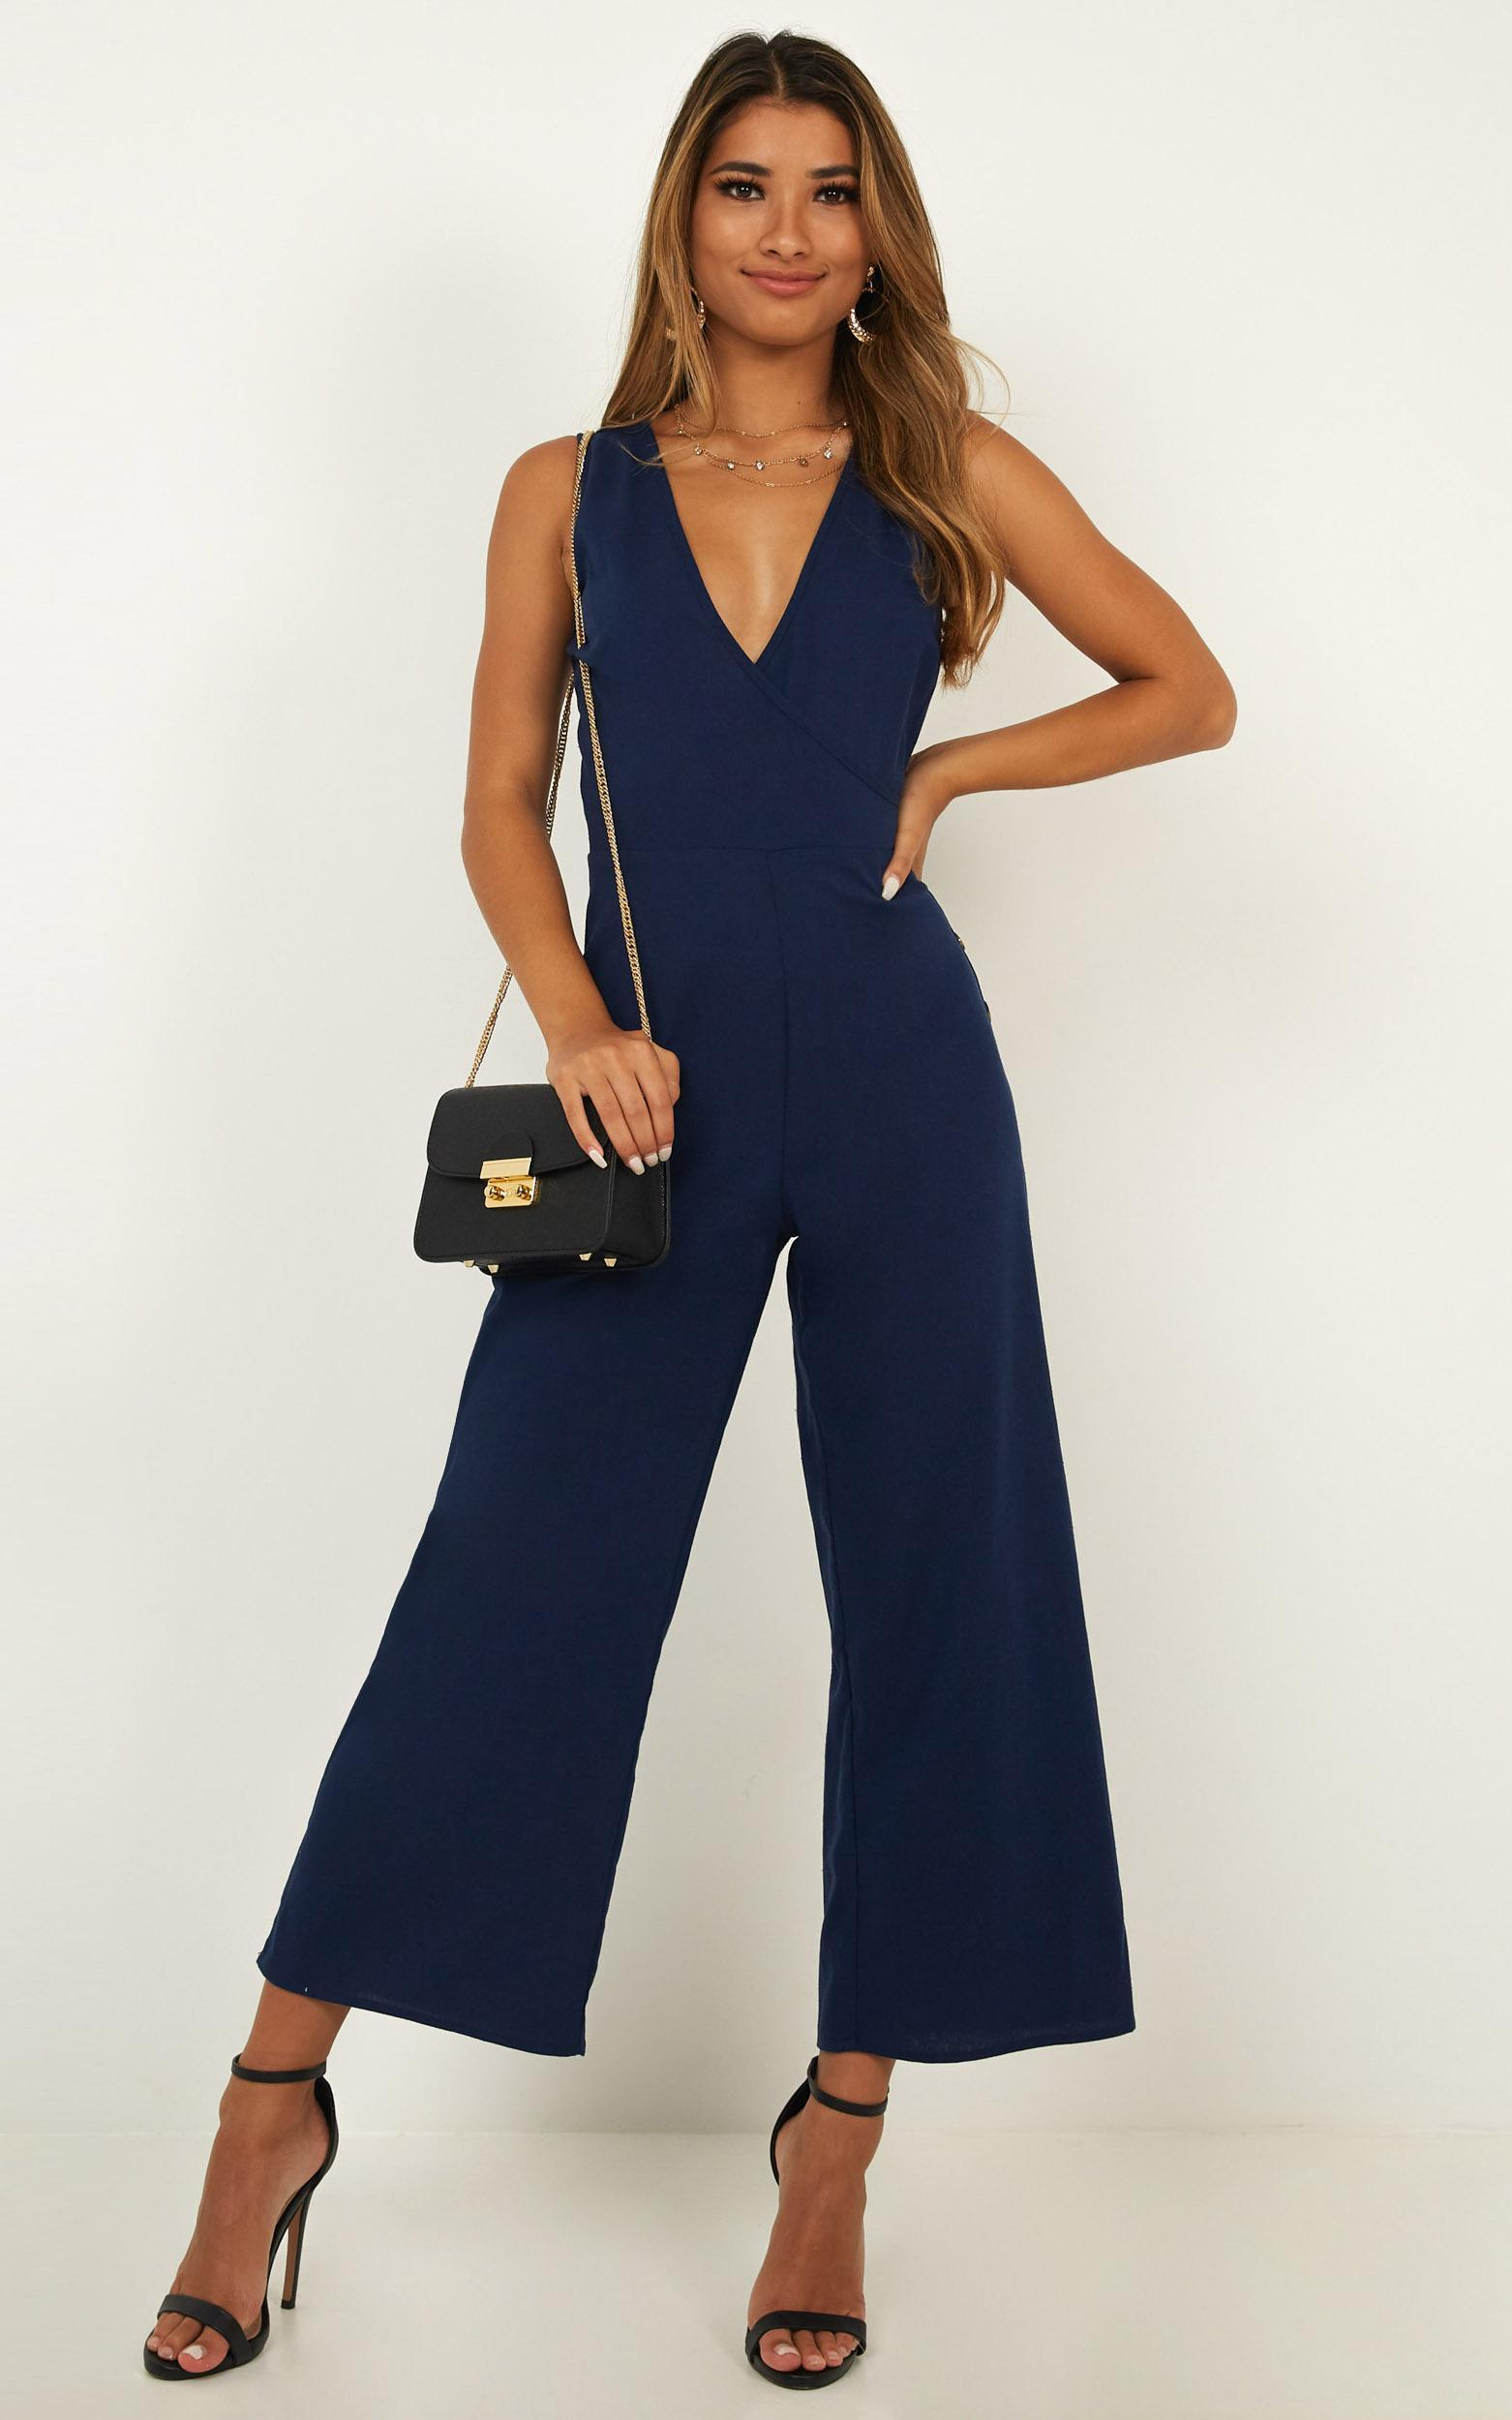 Clear As Crystal Jumpsuit in navy linen look - 16 (XXL), Navy, hi-res image number null